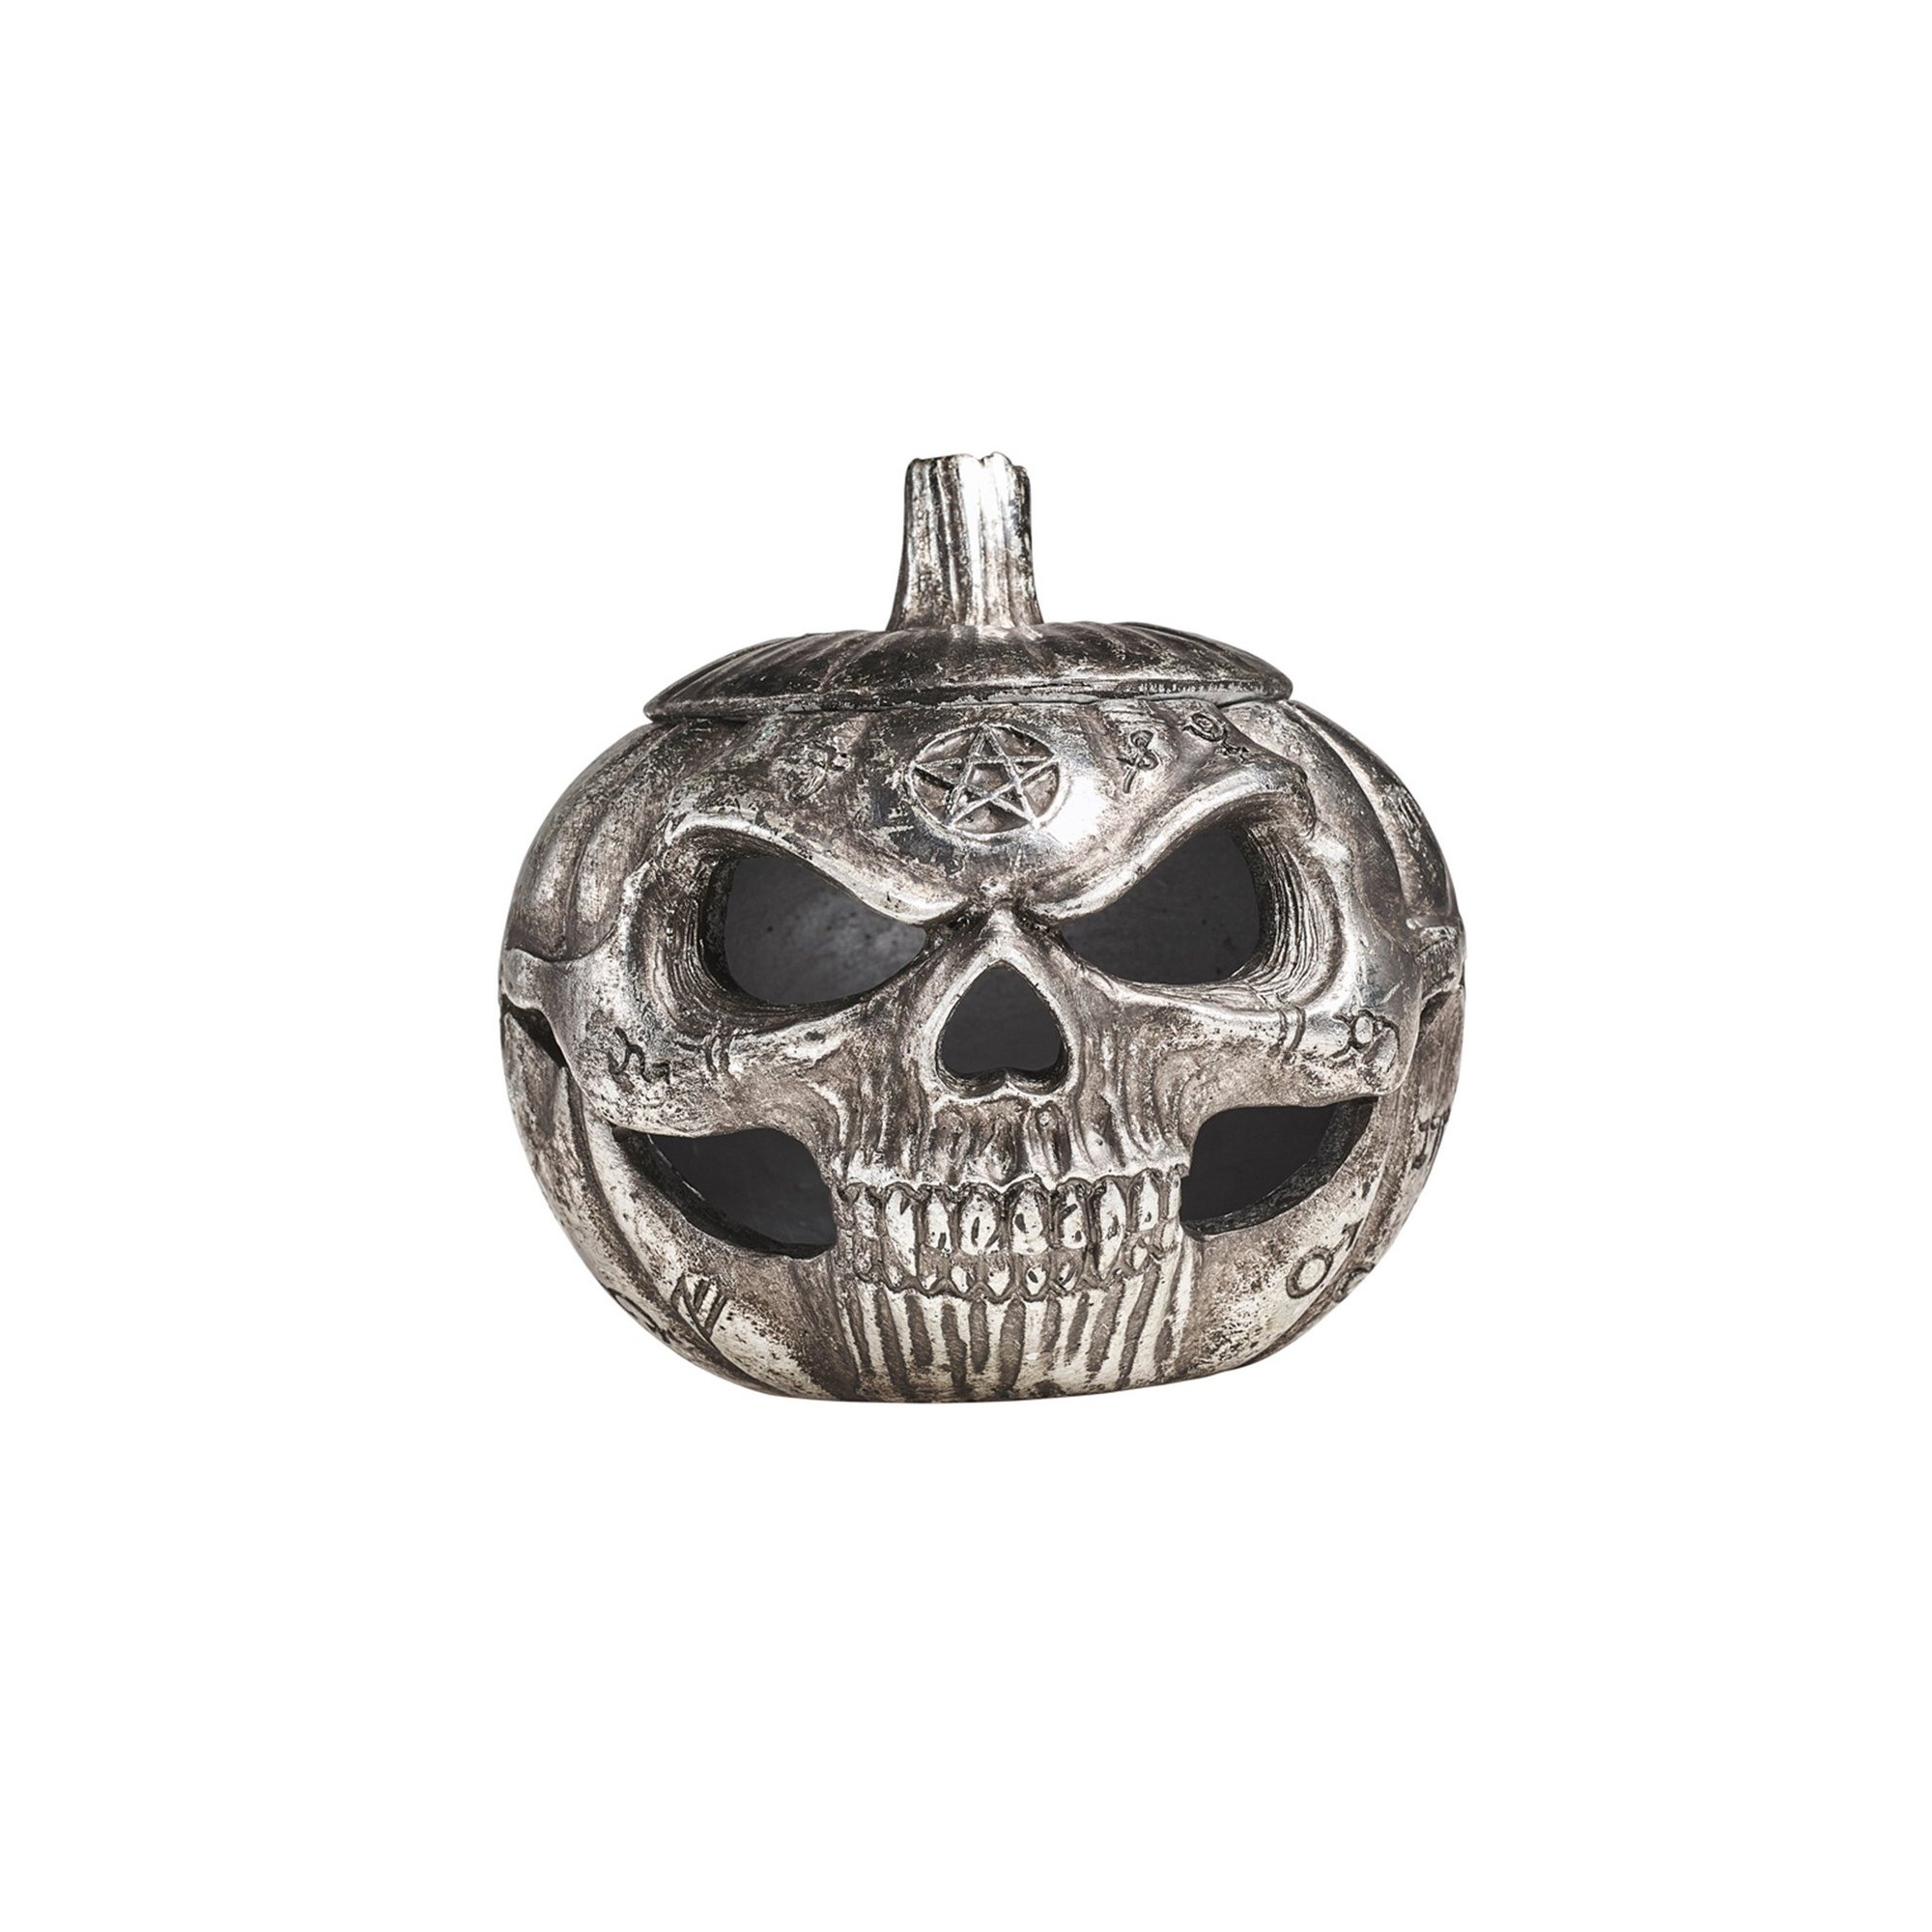 Image of Alchemy England Pumpkin Skull Pot